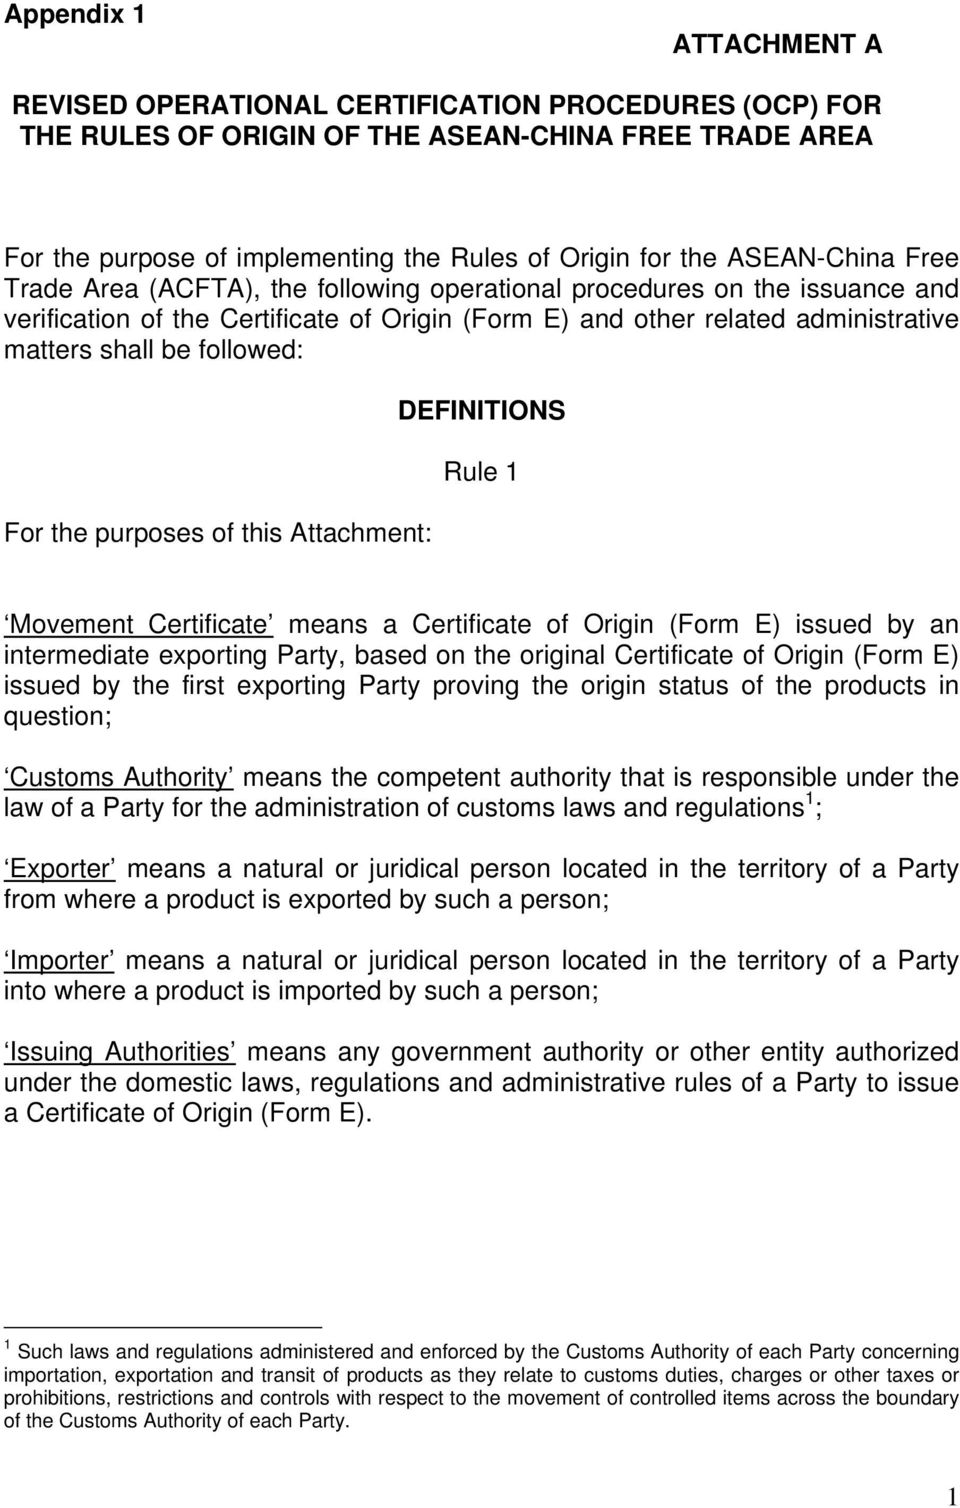 Appendix 1 ATTACHMENT A REVISED OPERATIONAL CERTIFICATION